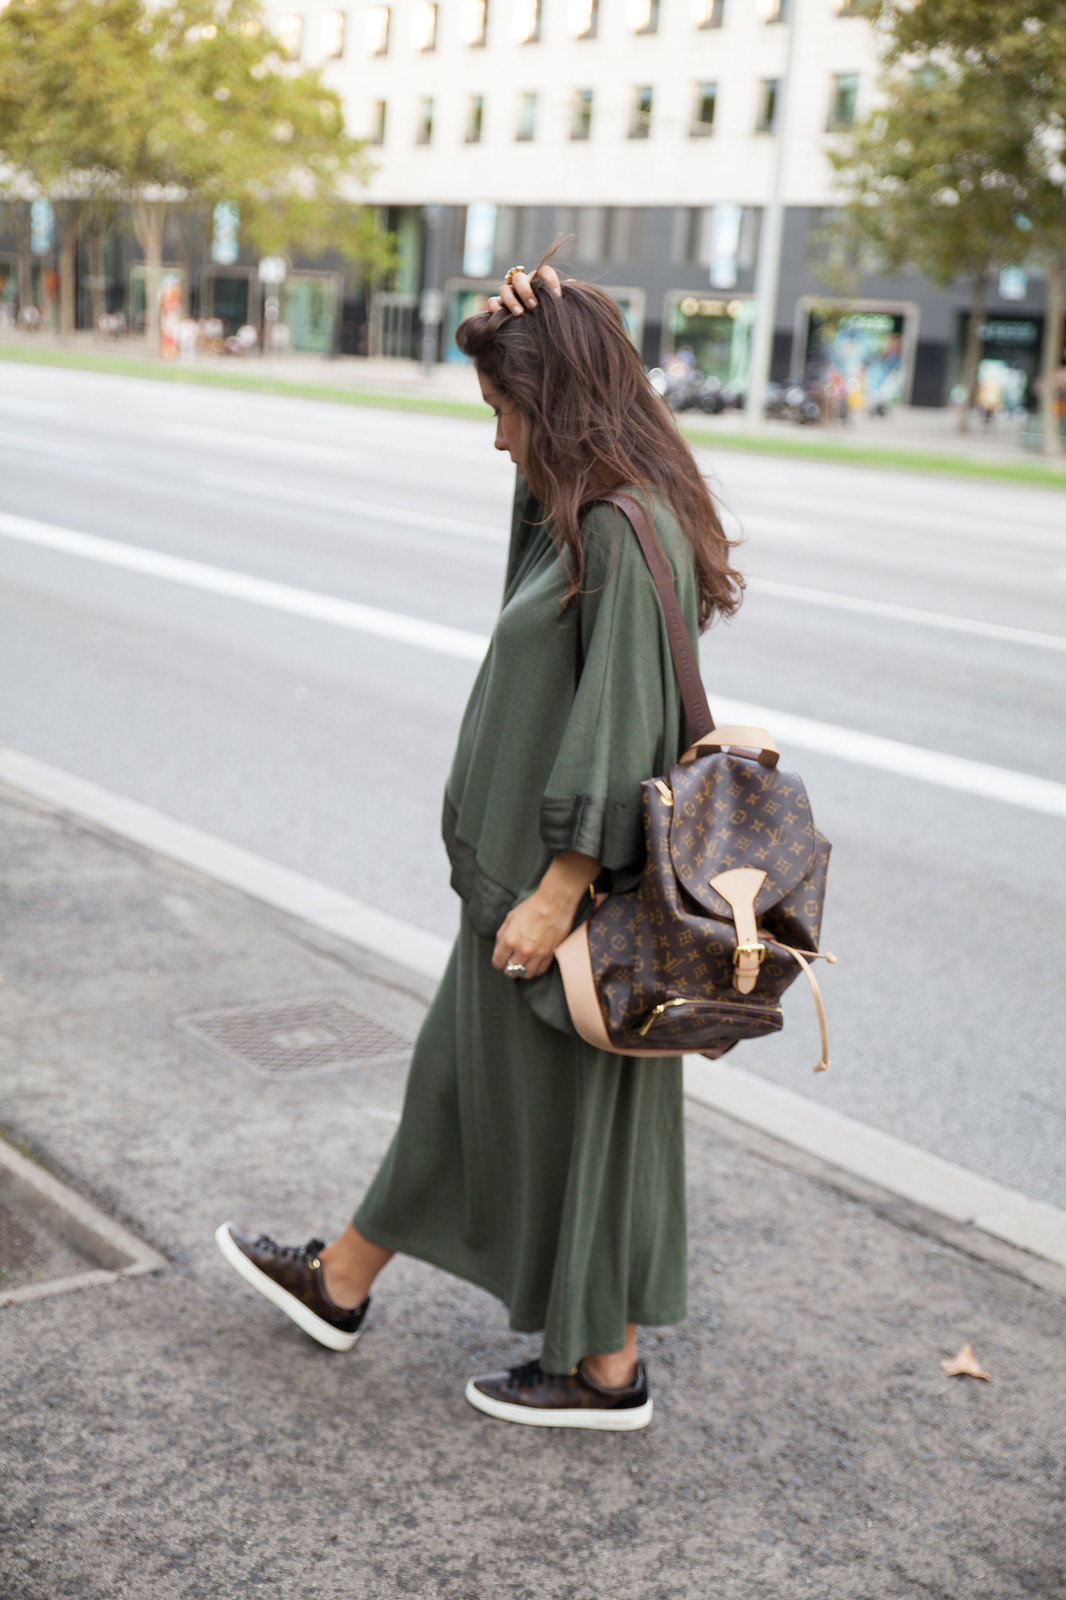 06_RÜGA_Fall_Winter_2018_2019_brand_ambassador_spain_fashion_influencer_pregnant_embarazada_look_barcelona_theguestgirl_laura_santolaria